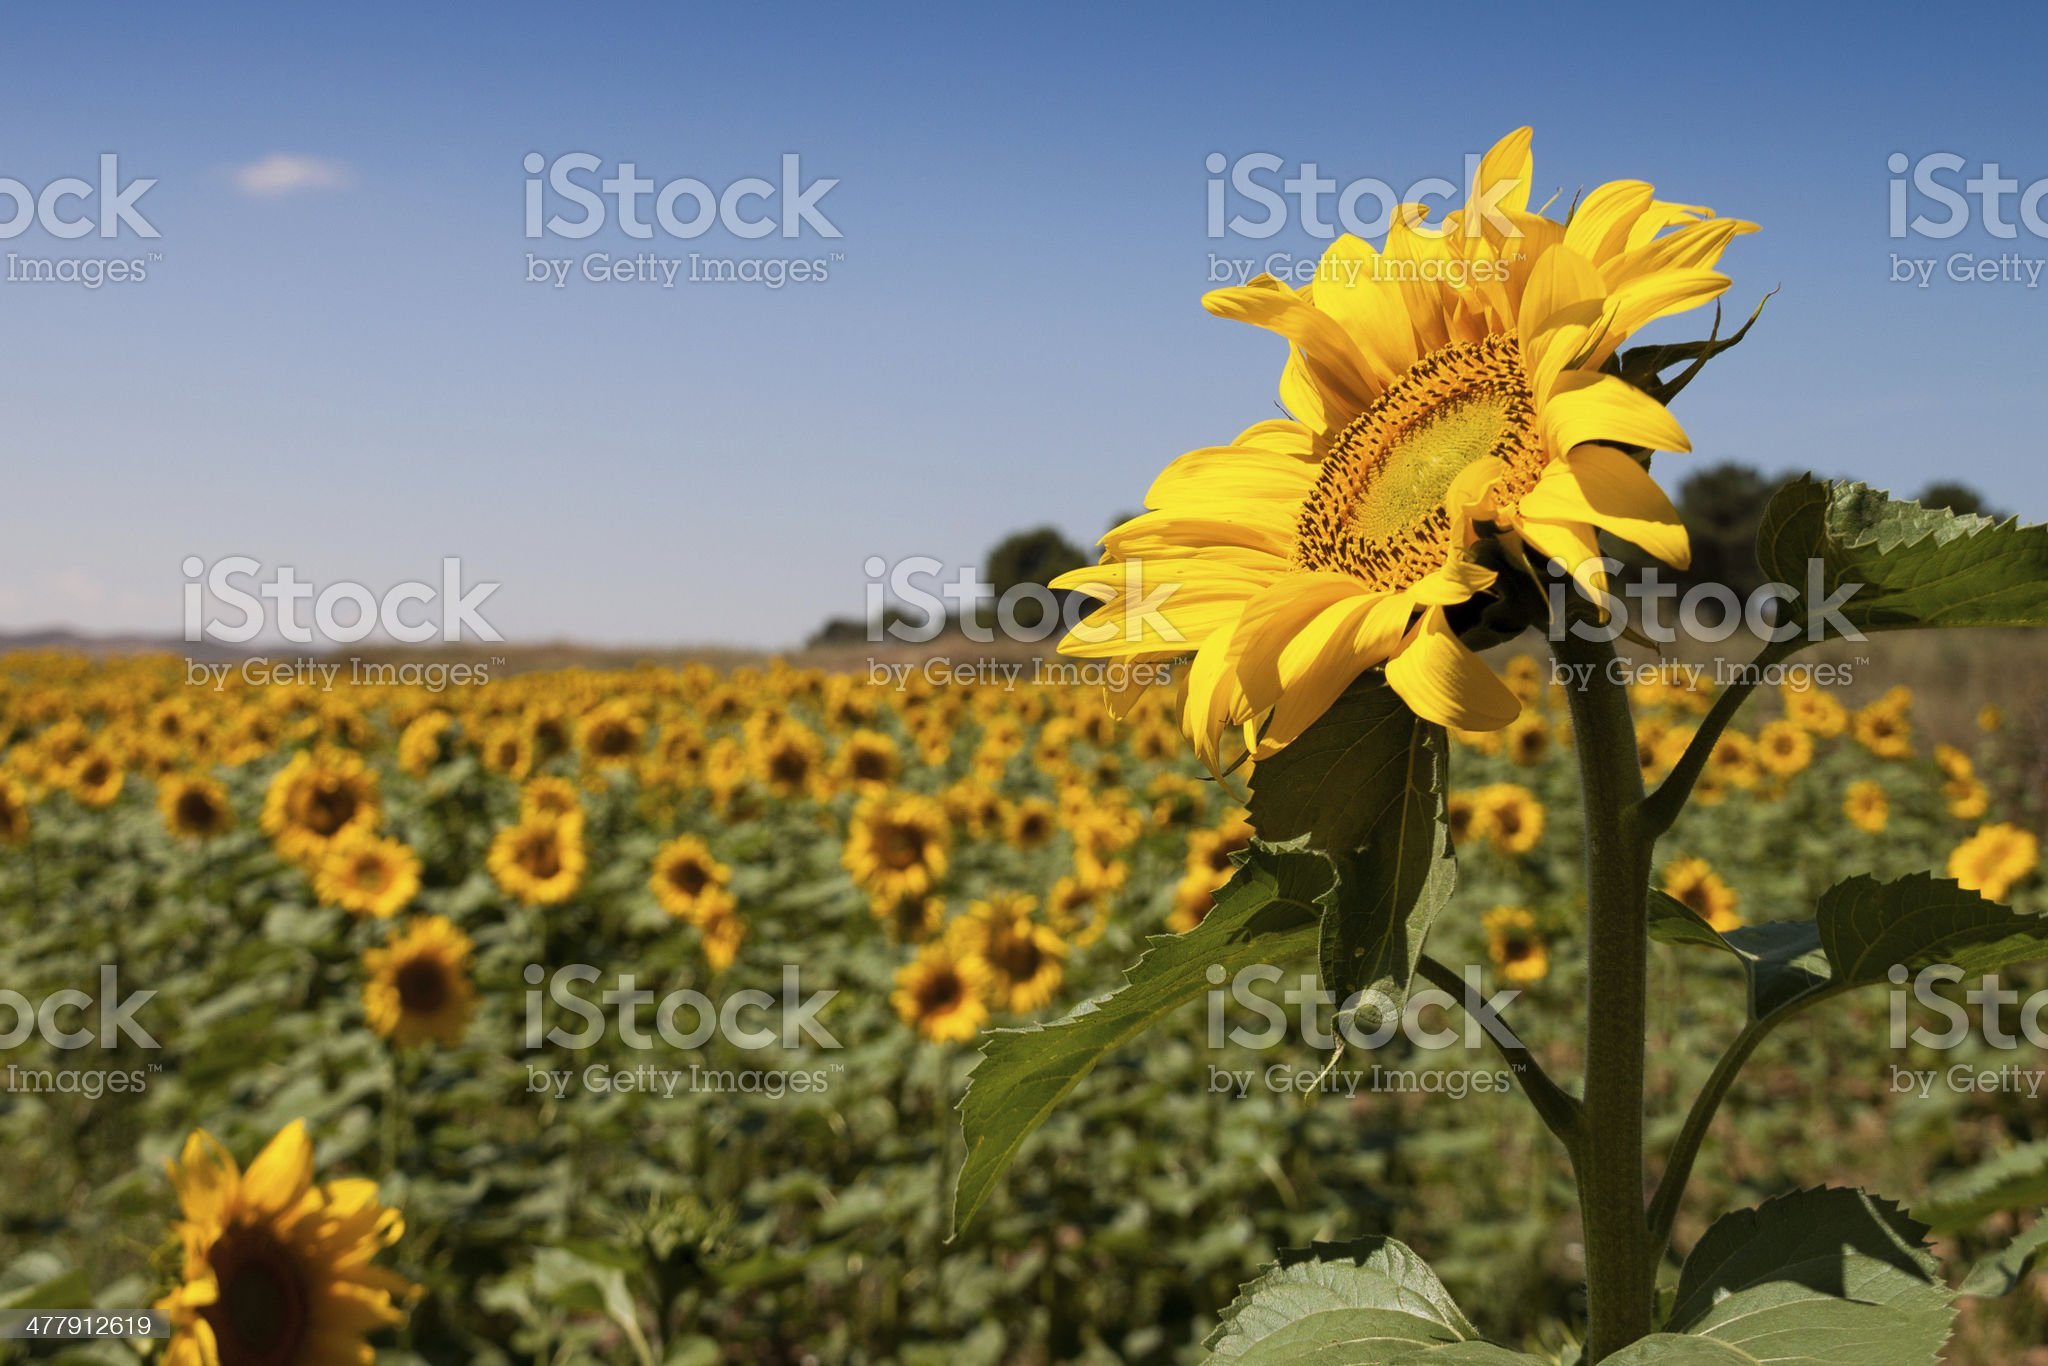 Sunflower over sunflowers royalty-free stock photo